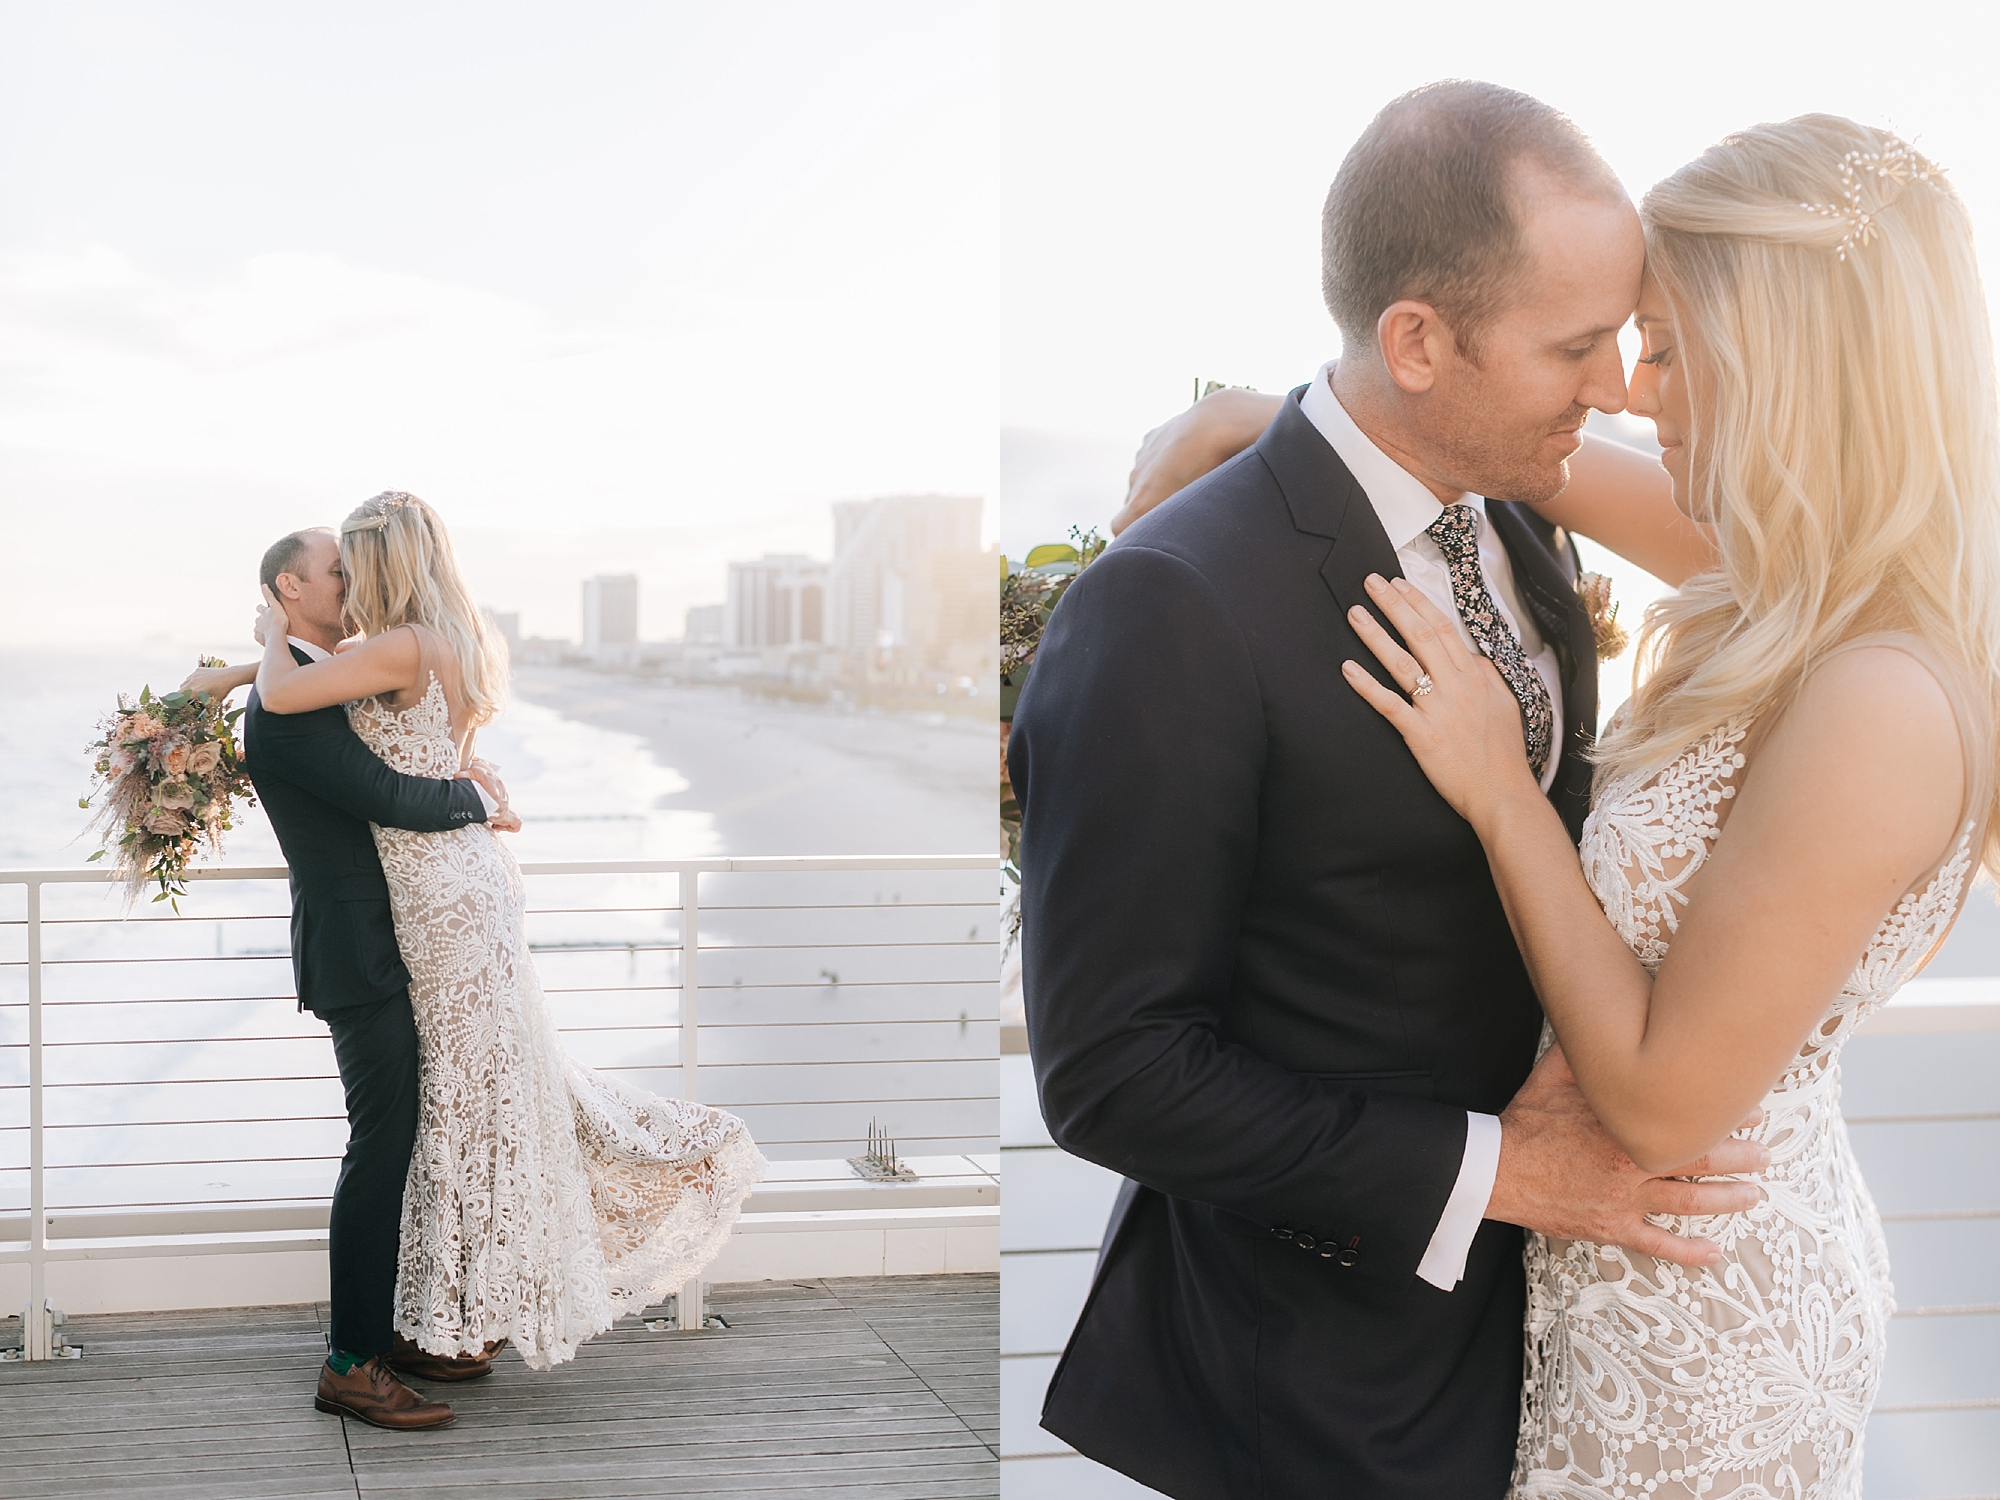 Stylish and Free Spirited Wedding Photography at One Atlantic in Atlantic City NJ by Magdalena Studios 0068 2